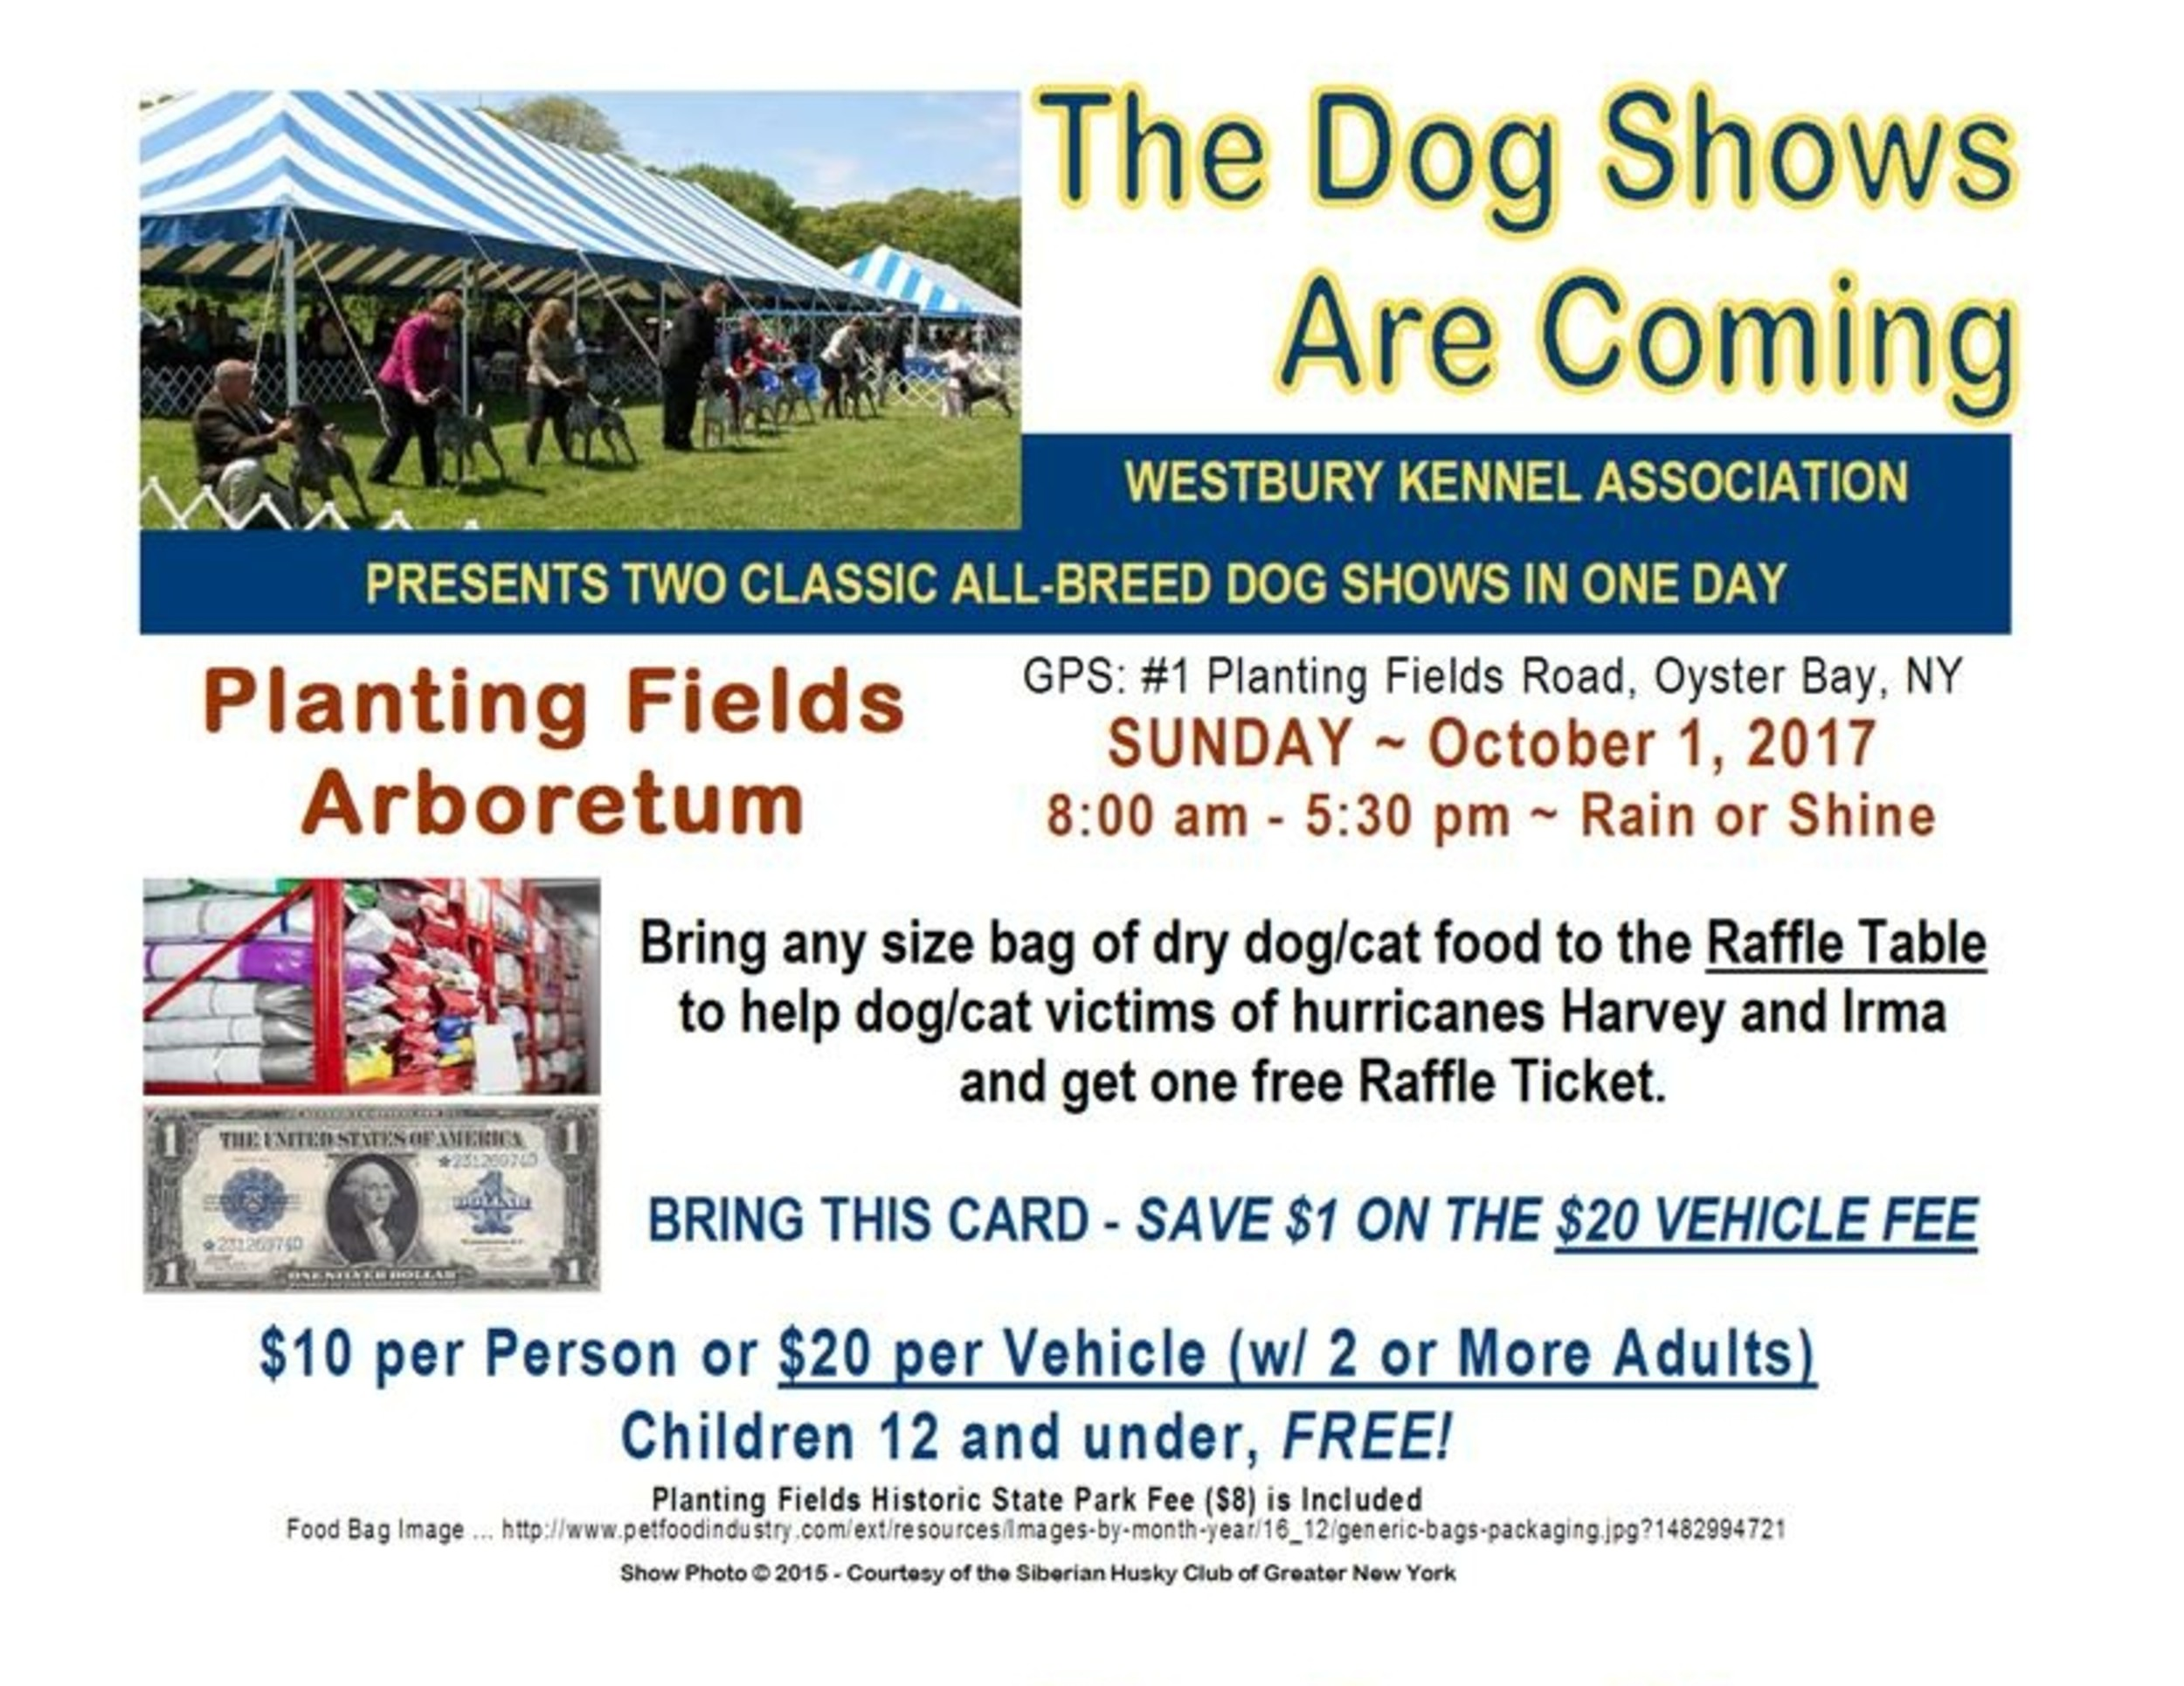 dog show 85th anniversary event westbury kennel association